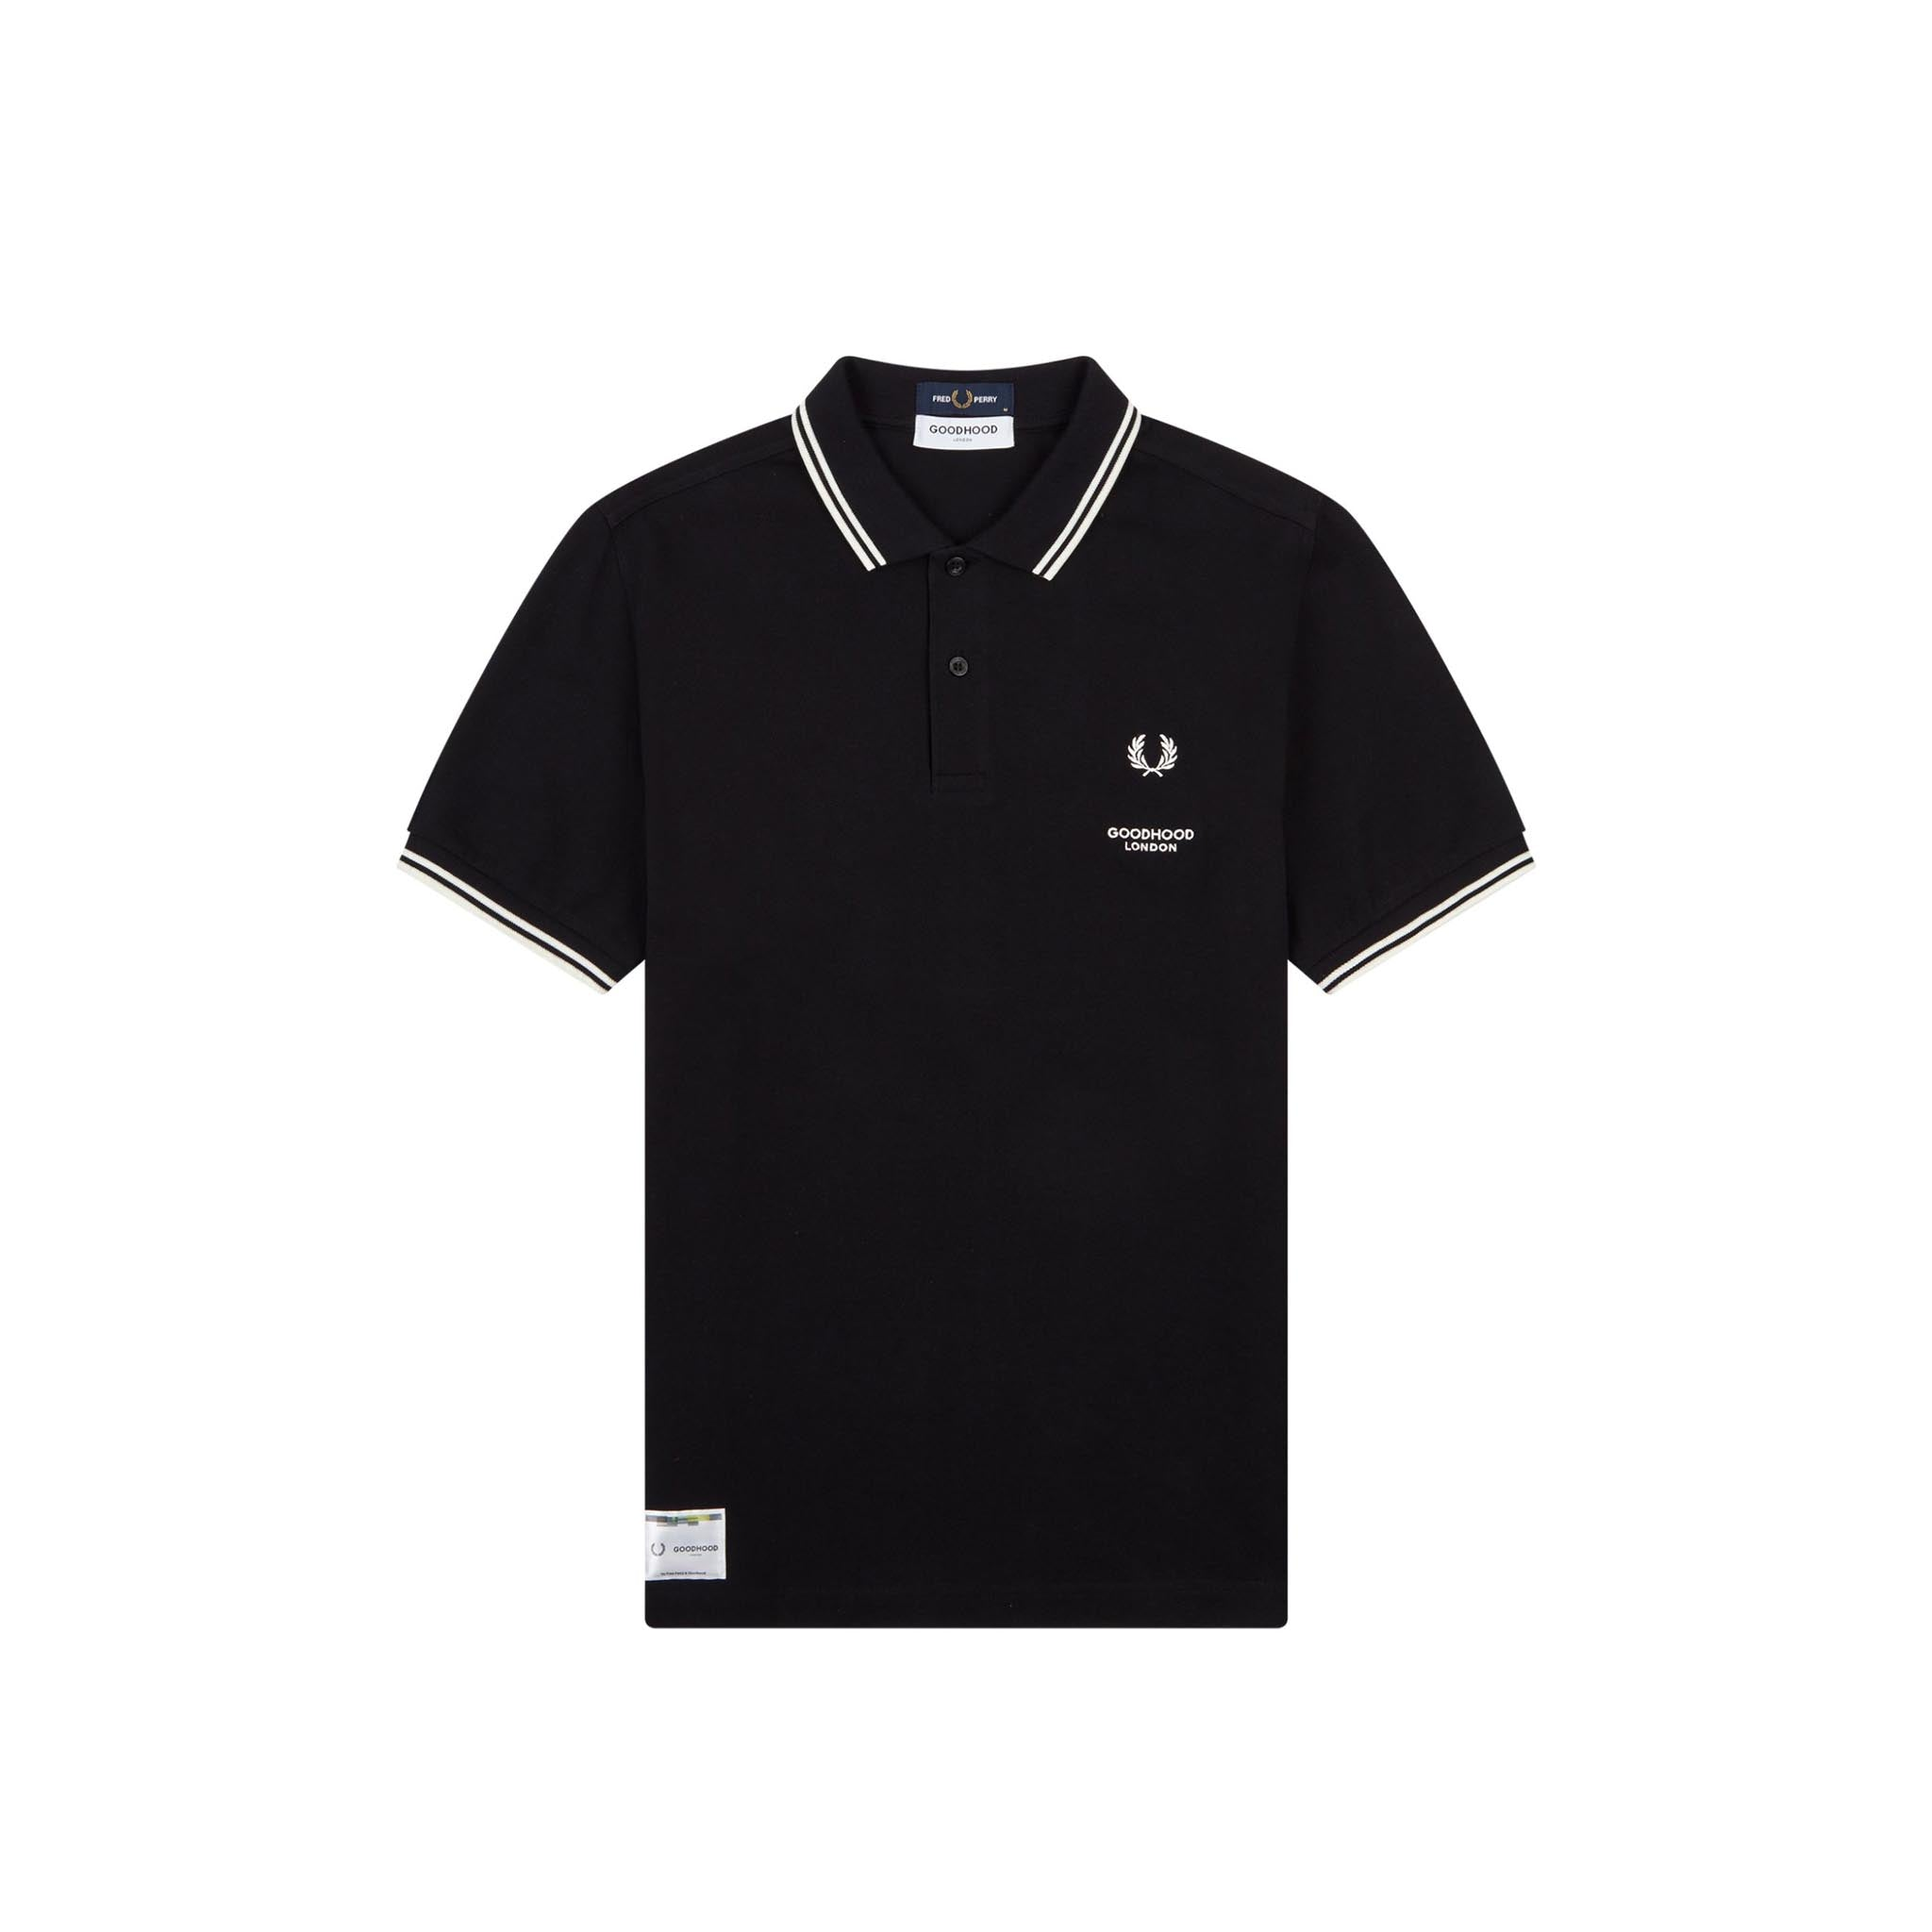 Fred Perry x Goodhood London Printed Polo Shirt Black